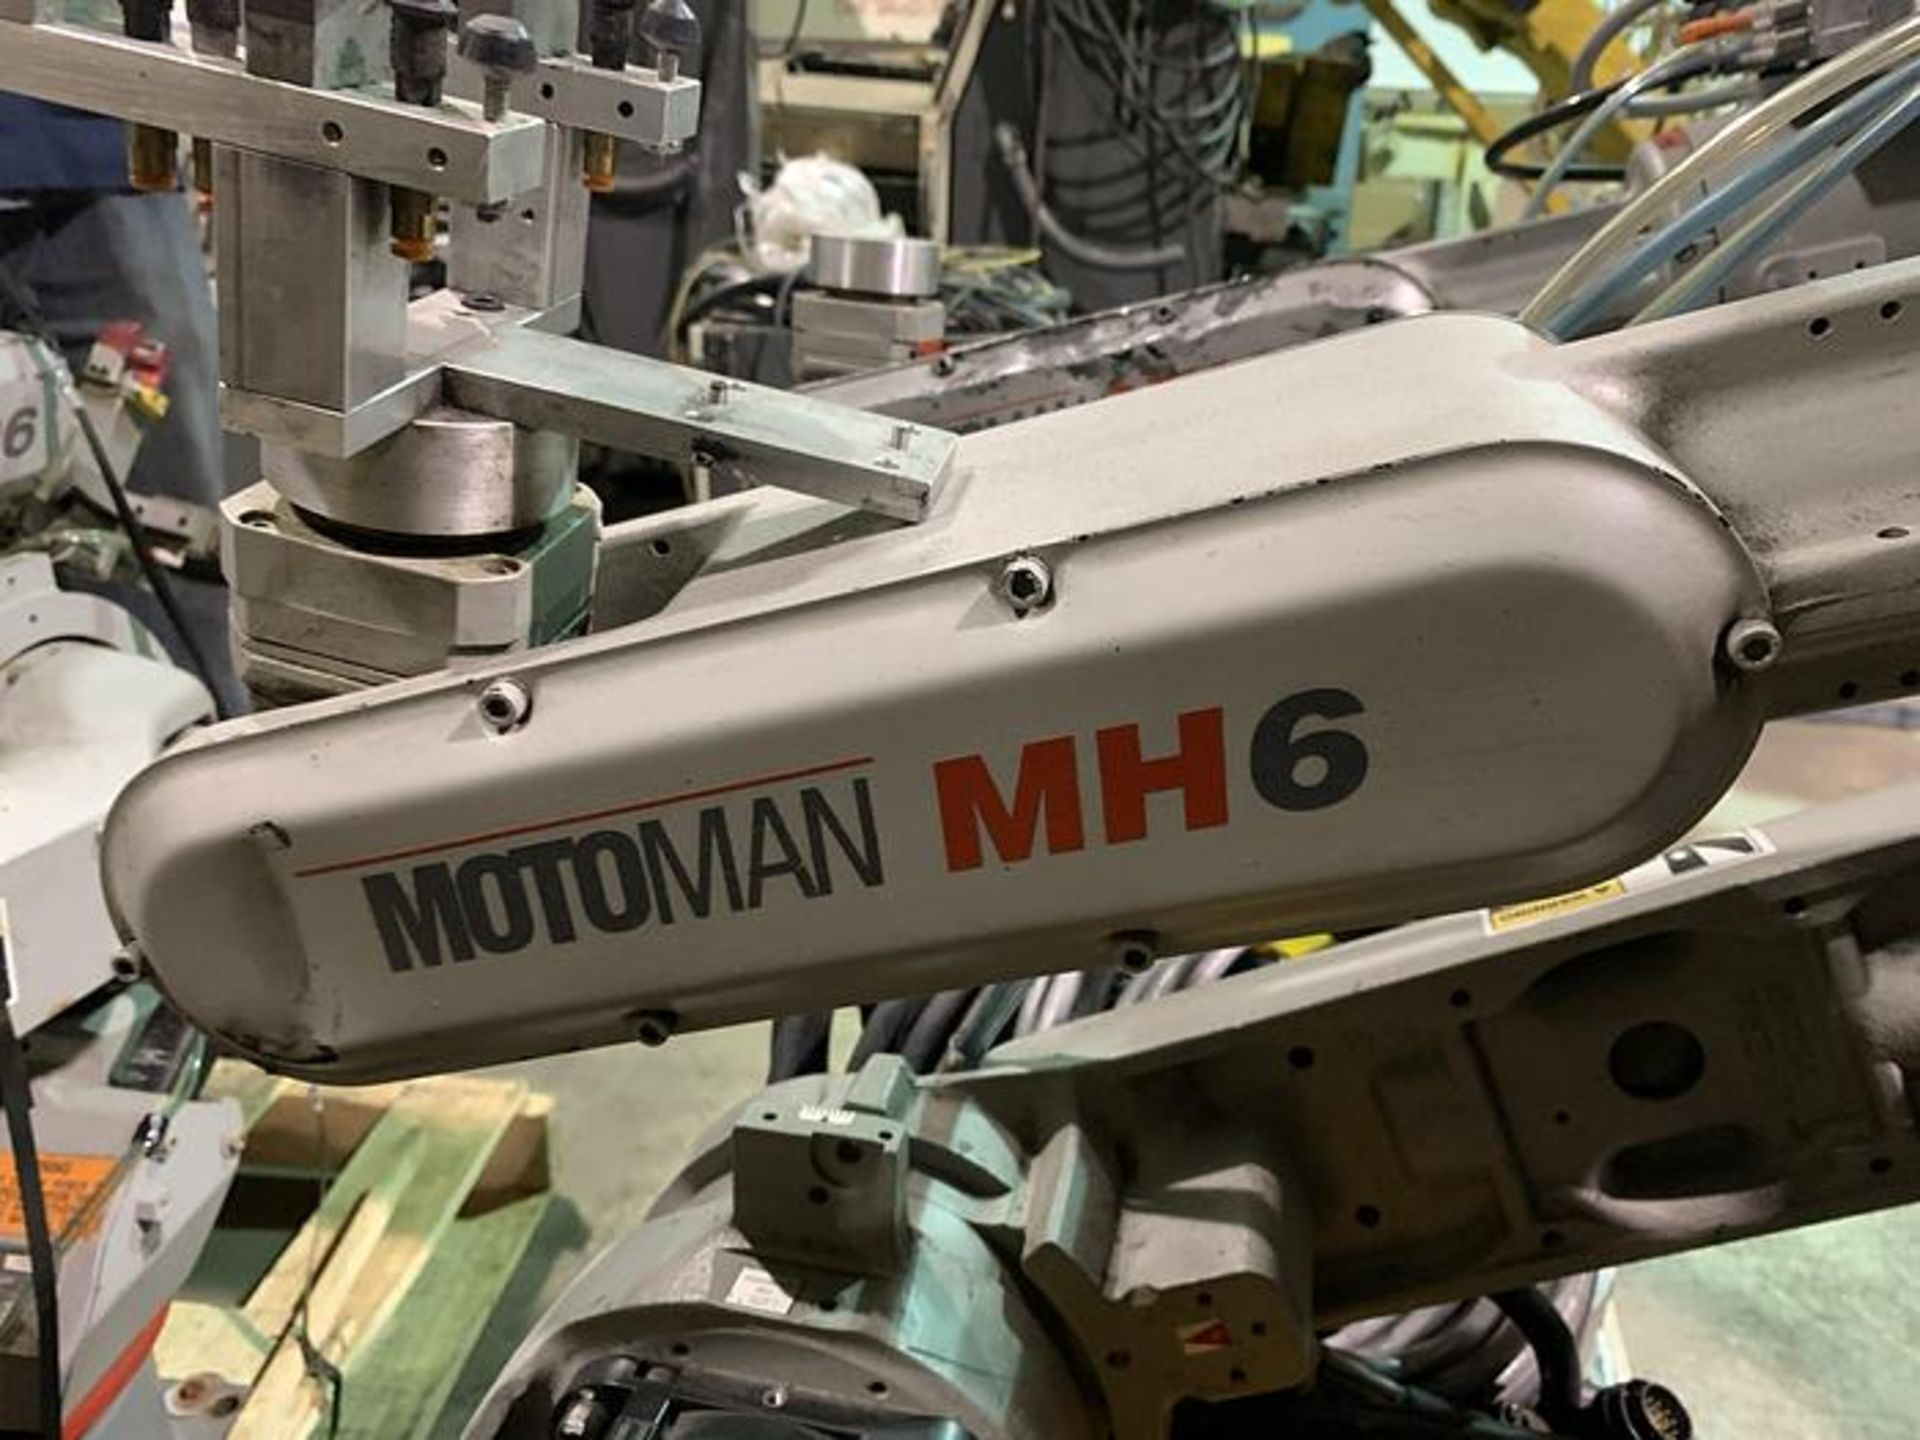 MOTOMAN ROBOT MH6 HIGH SPEED 6 AXIS ROBOT WITH DX100 CONTROLLER, CABLES & TEACH, SN S86C95-1-1 - Image 2 of 8